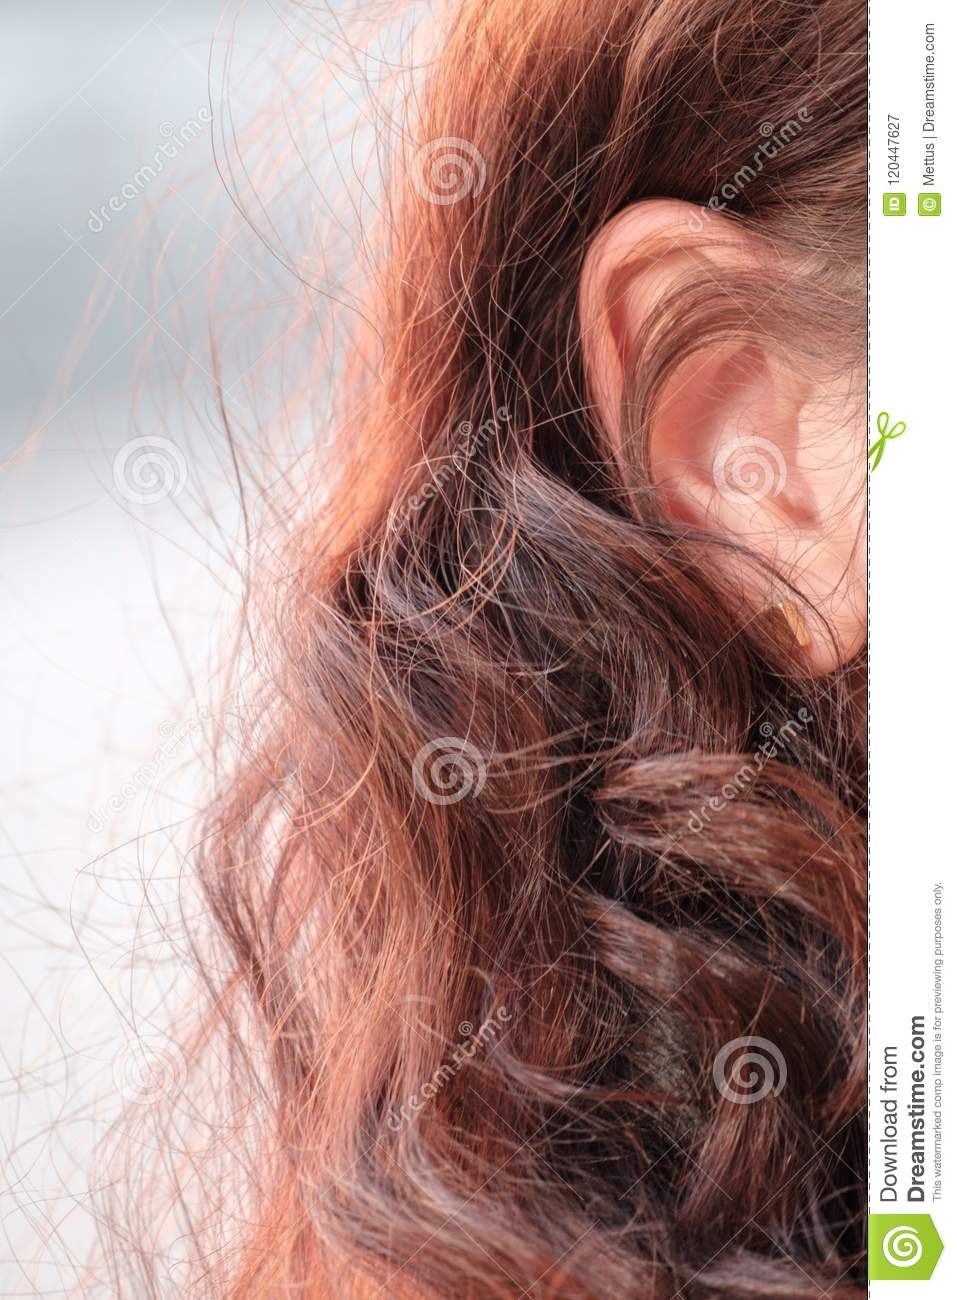 Closeup picture of redhaired girl ear